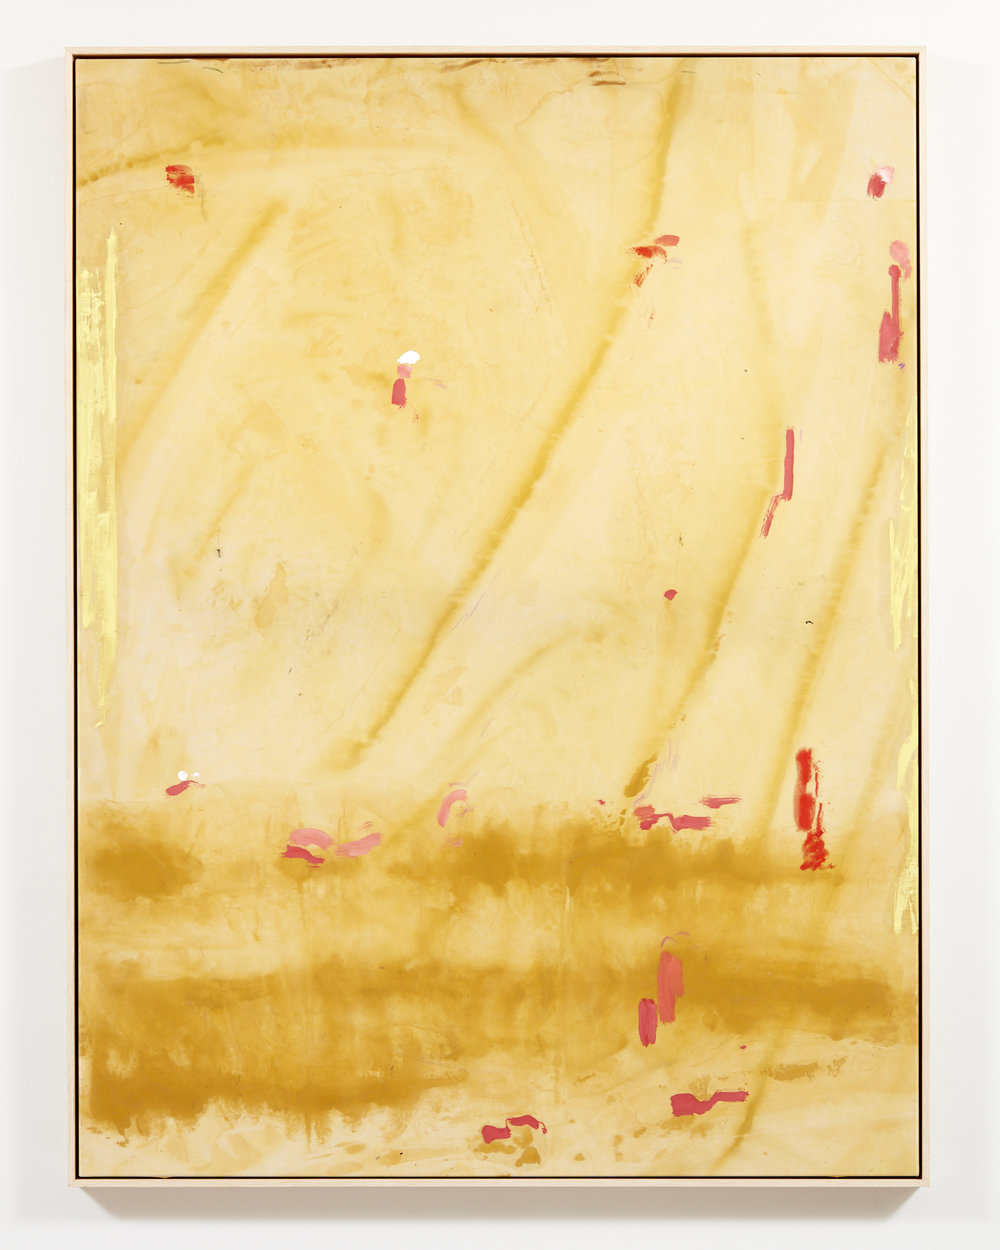 """33°55'19.8""""S 151°17'18.0""""E acrylic dye and oil stick on polyester silk 121 x 91 cm"""